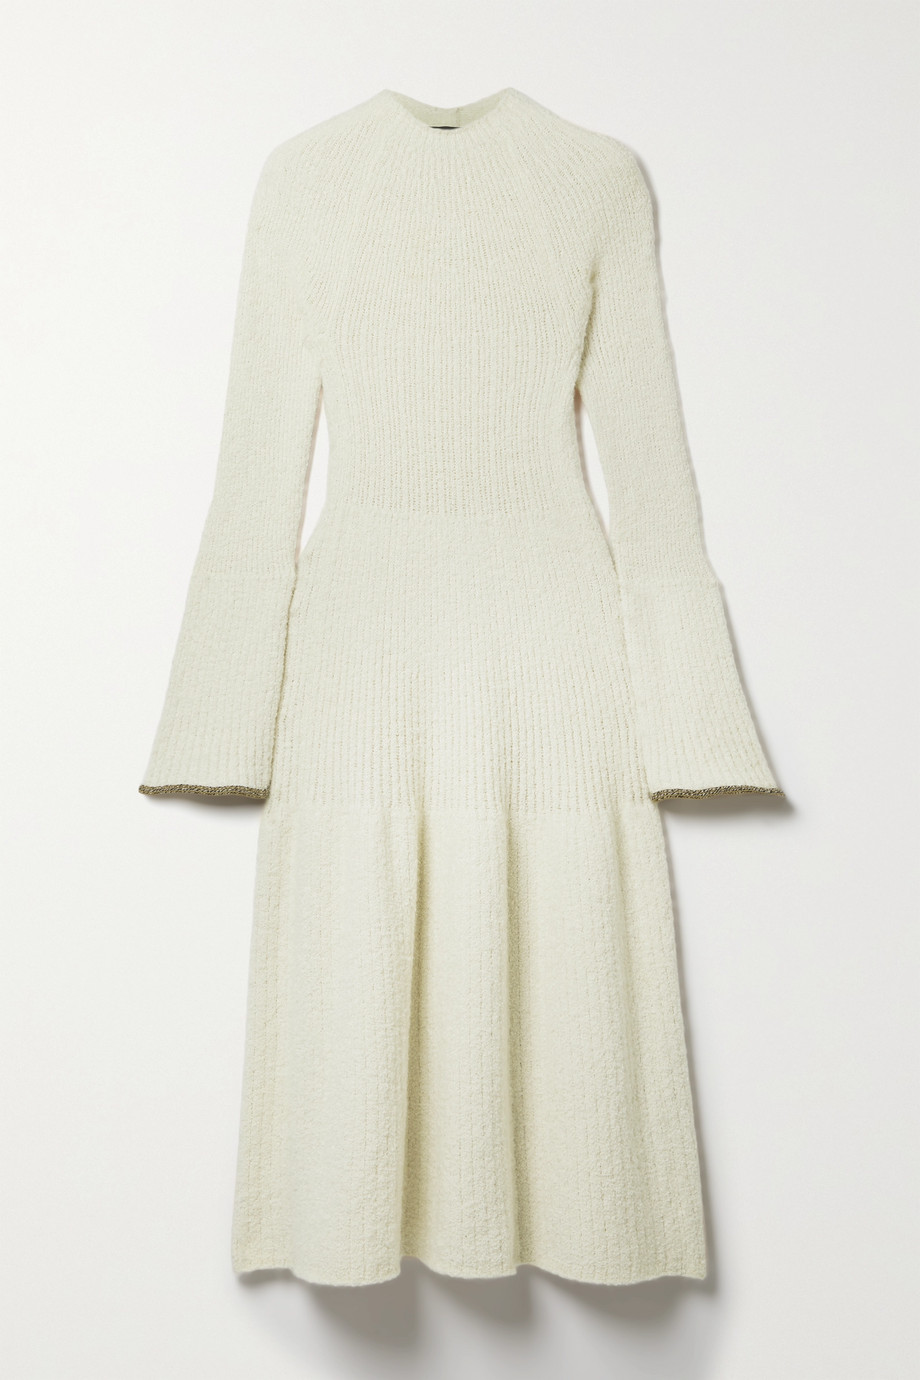 Proenza Schouler Bouclé-knit midi dress